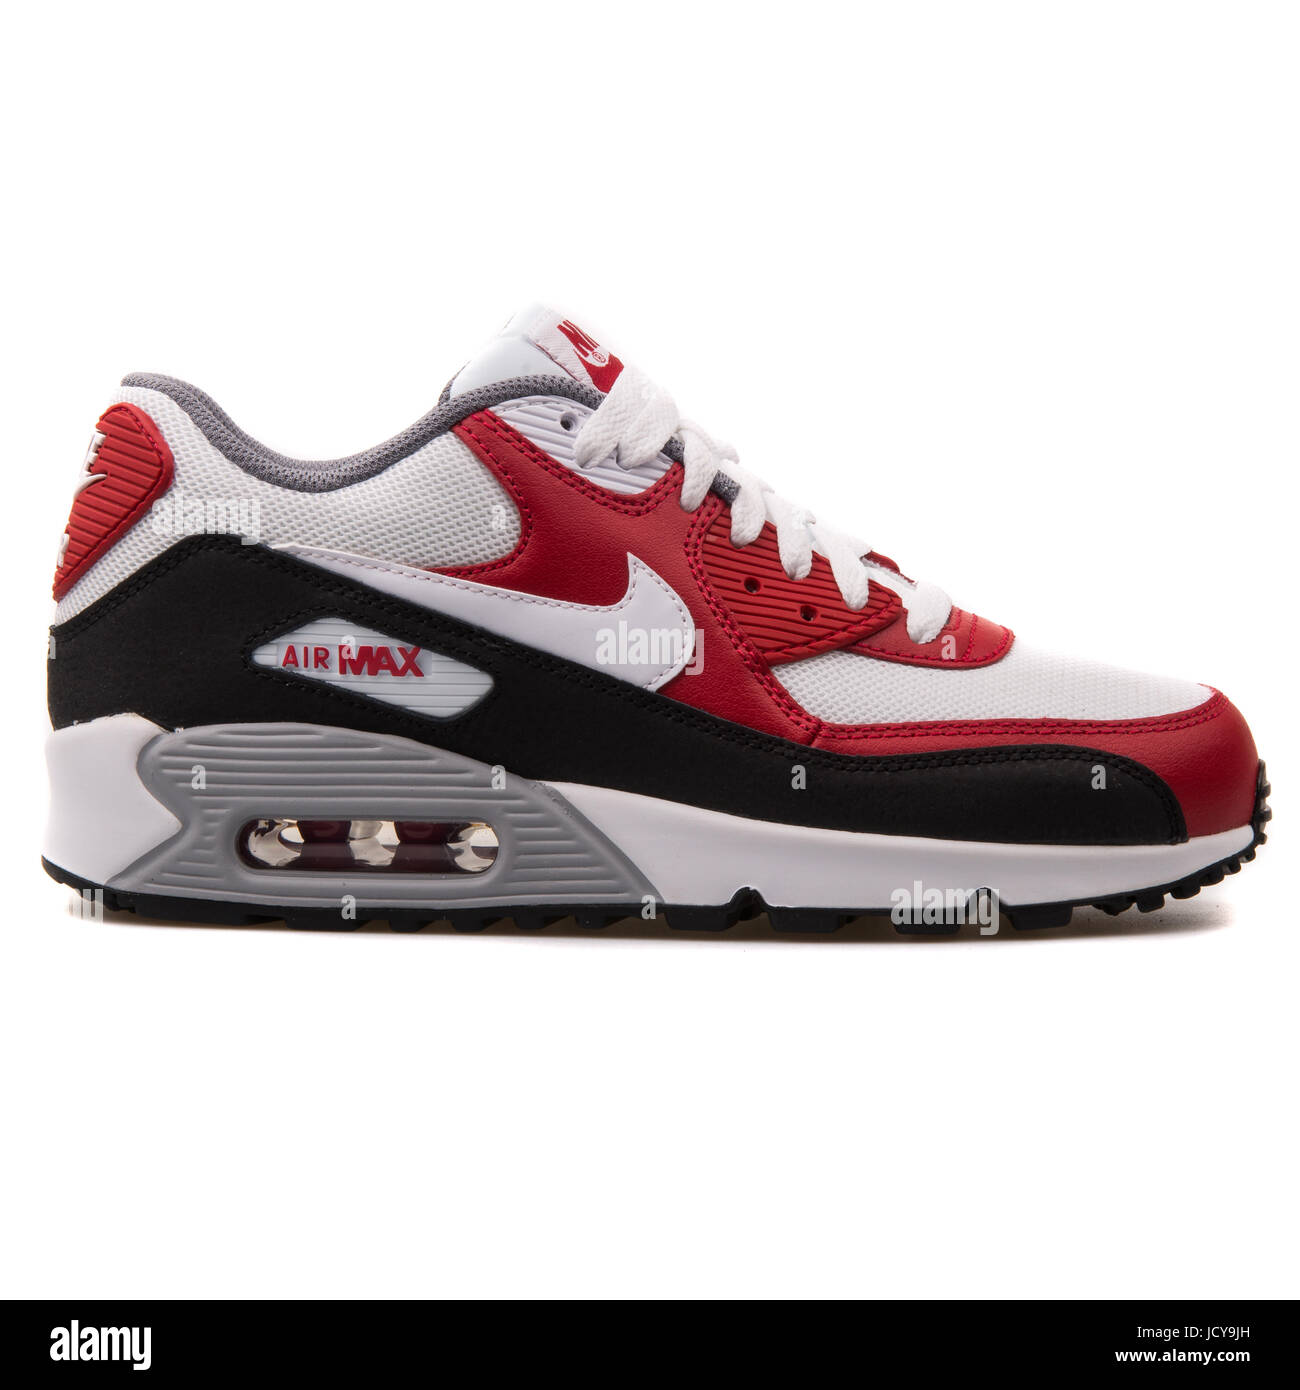 Nike Air Max 90 Mesh (GS) White, Red and Black Youth's Running ...